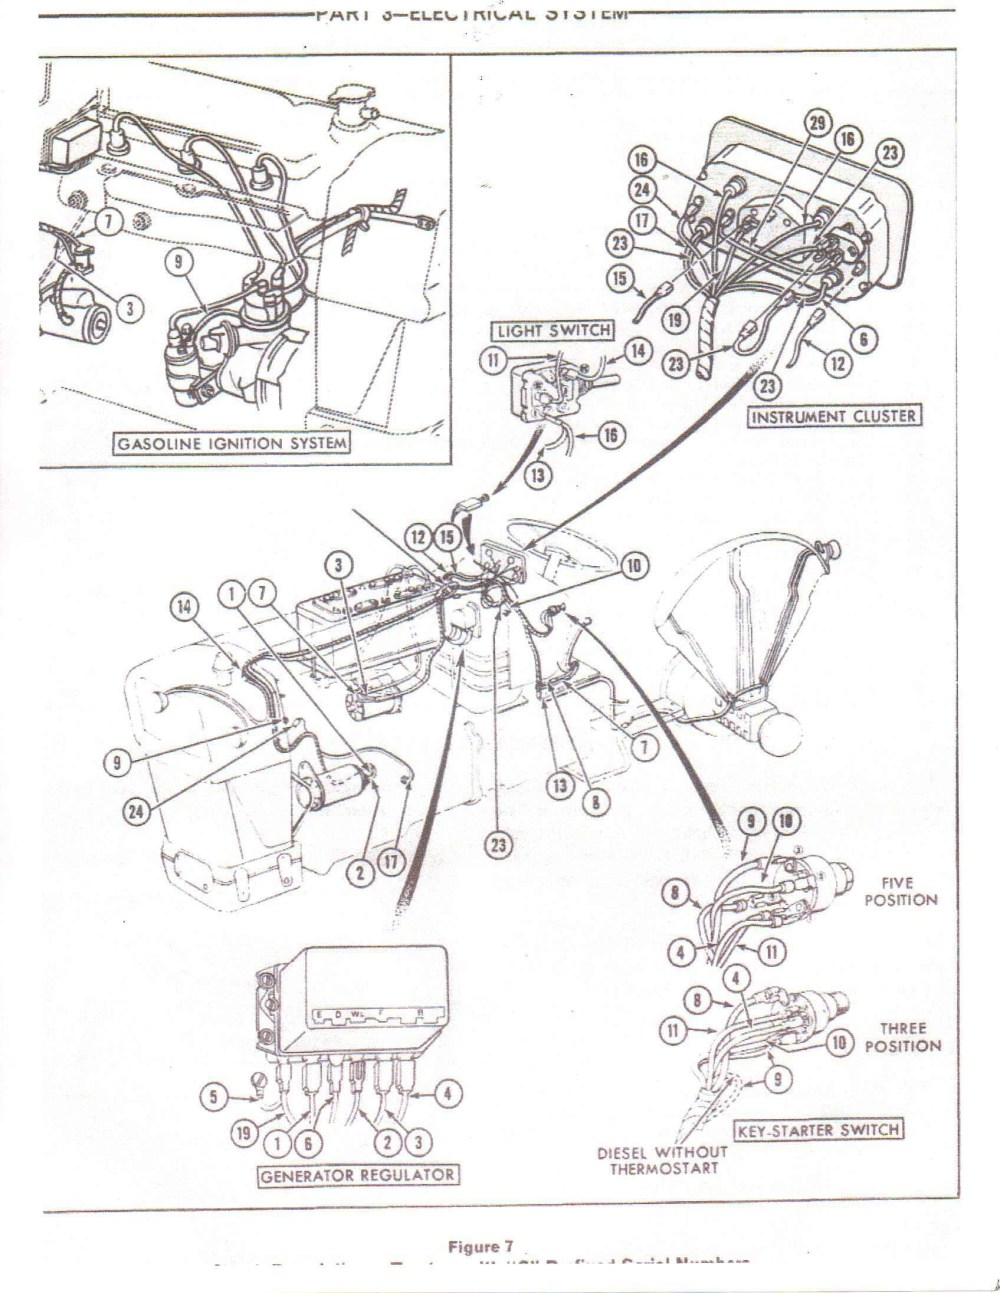 medium resolution of ford 3000 instrument panel wiring diagram wiring diagrams ford 500 wiring diagram ford 3000 tractor instrument panel wiring diagram free picture